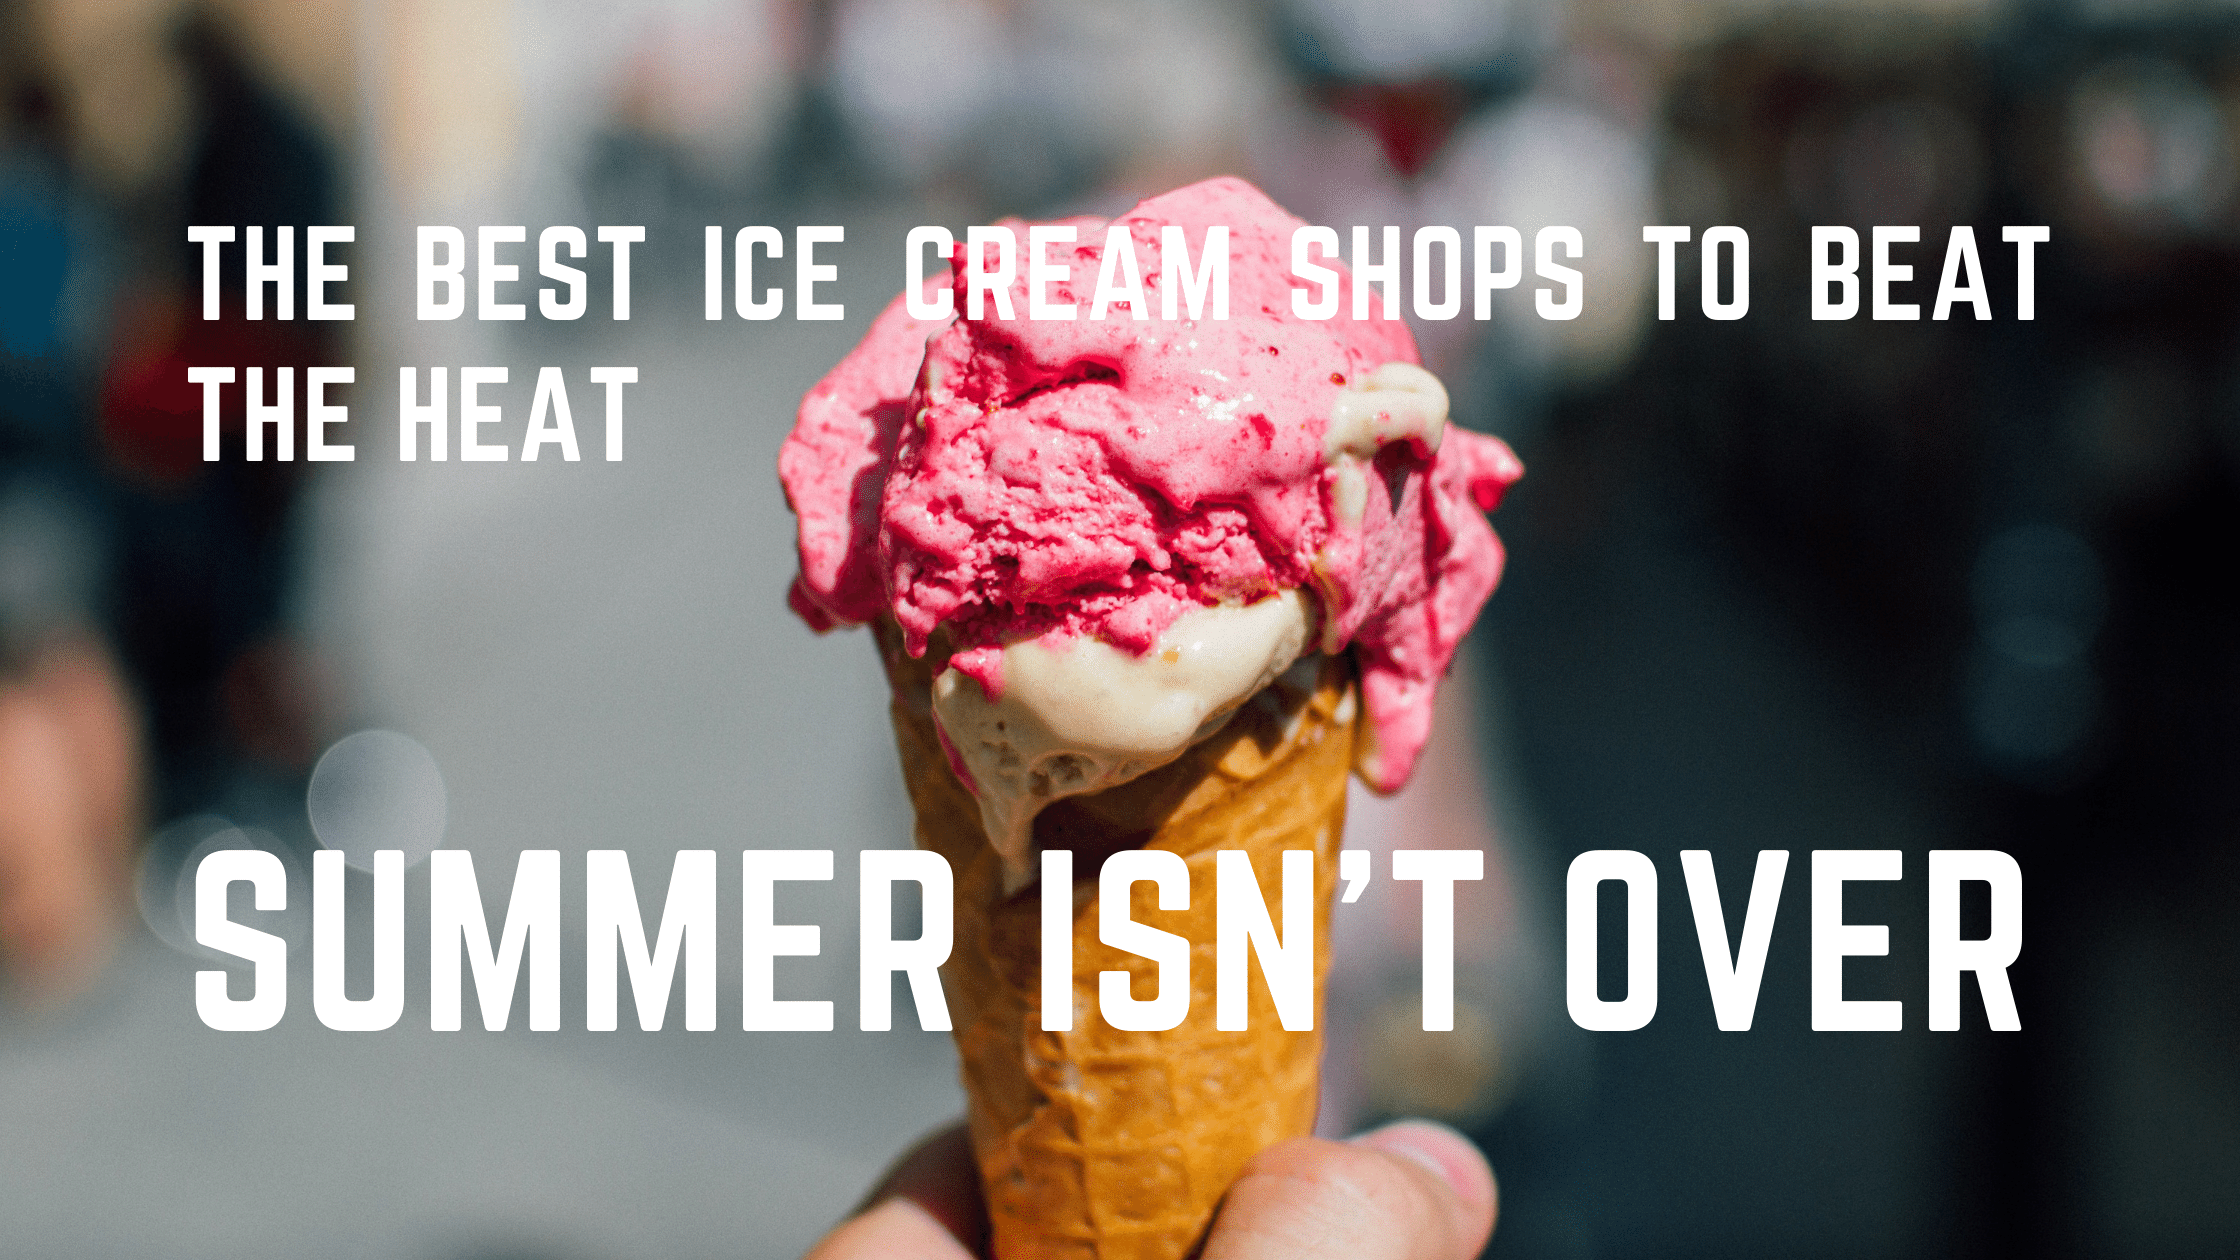 The Best Ice Cream Shops to Beat the Heat in Denver